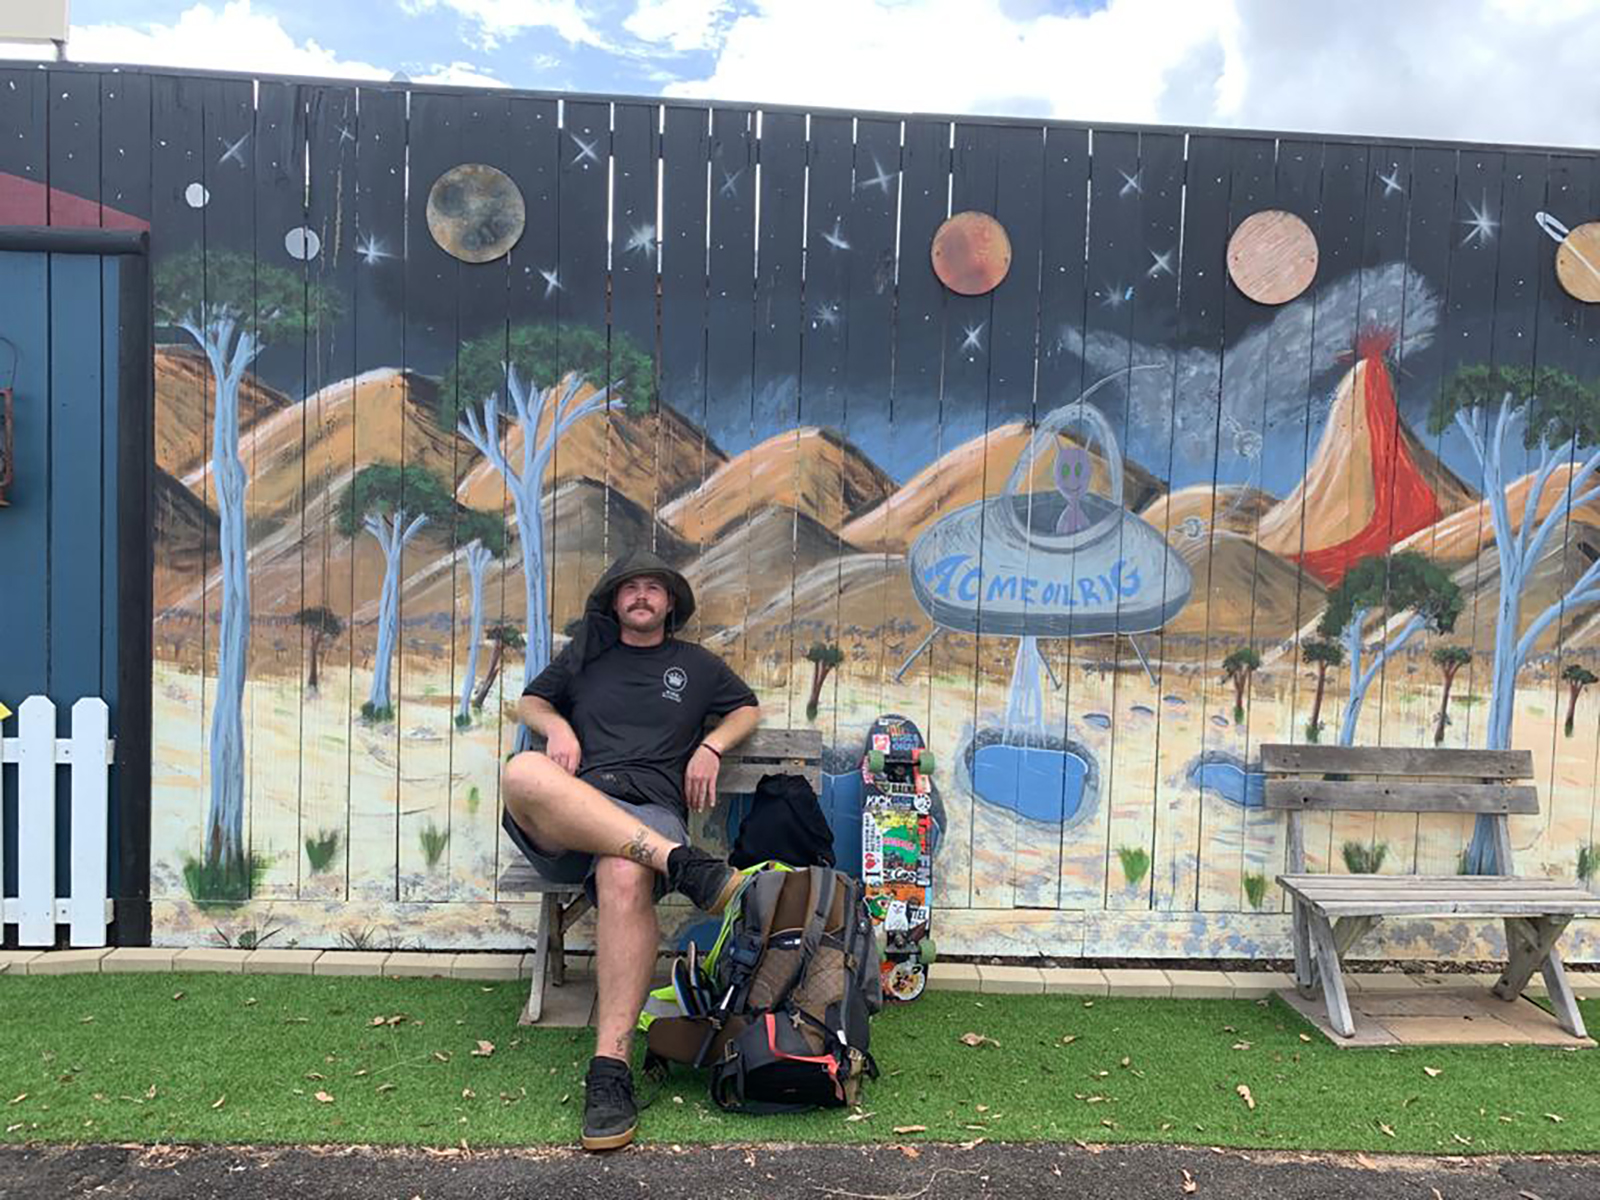 Trekking 4,000km along the Australian coast — on a skateboard